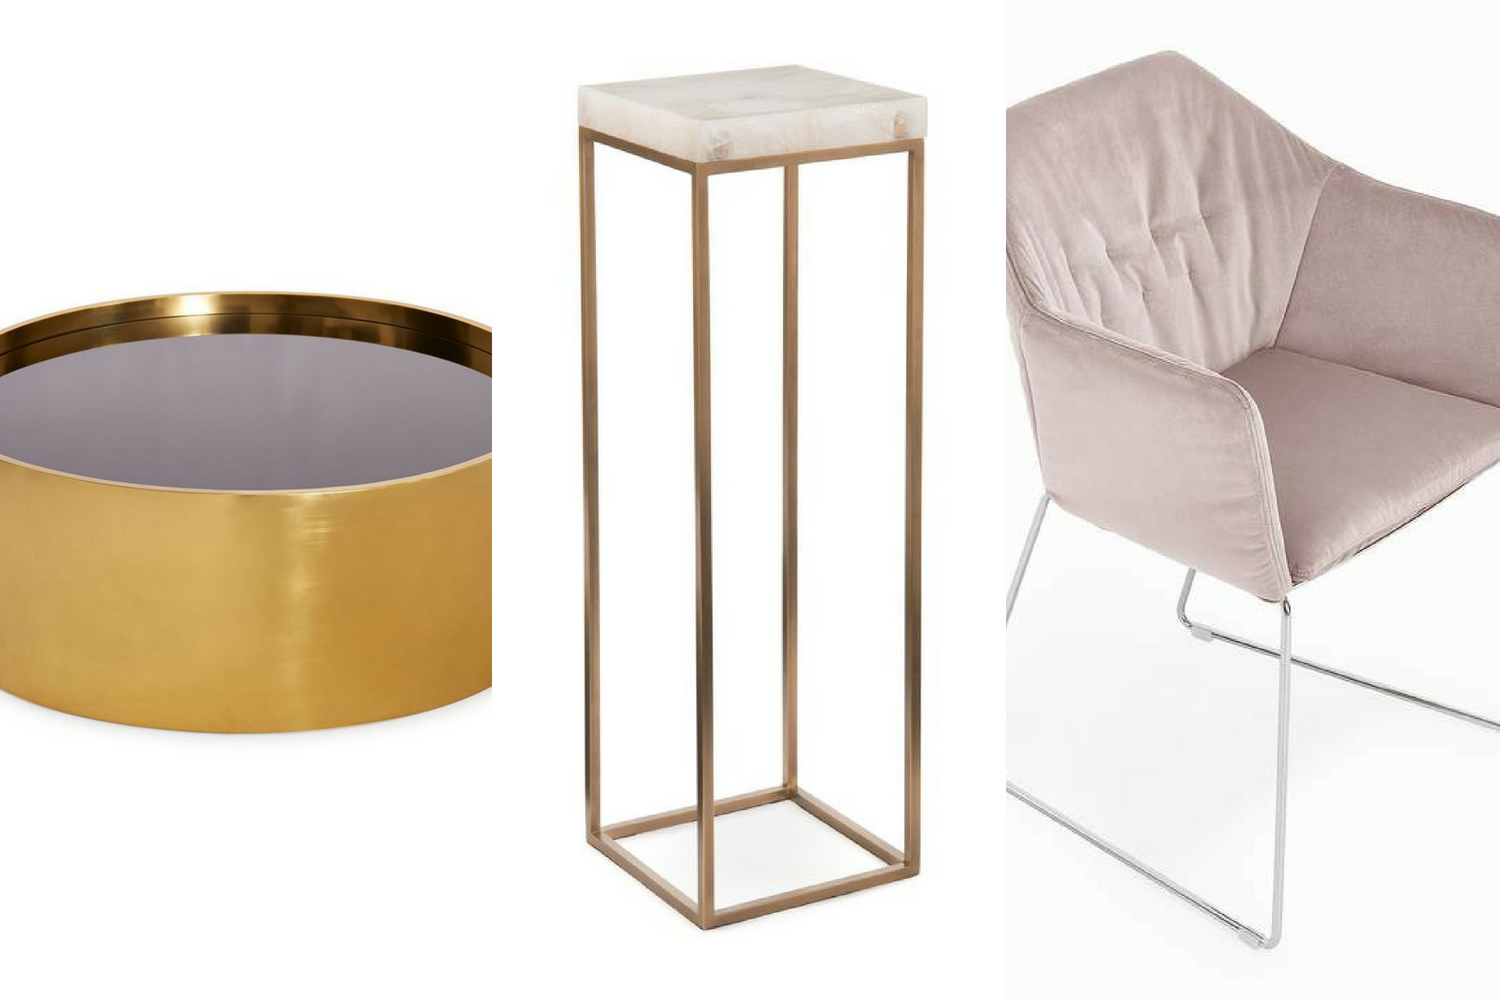 8 Minimalist Furniture Pieces To Make You Fall In Love Dining Room